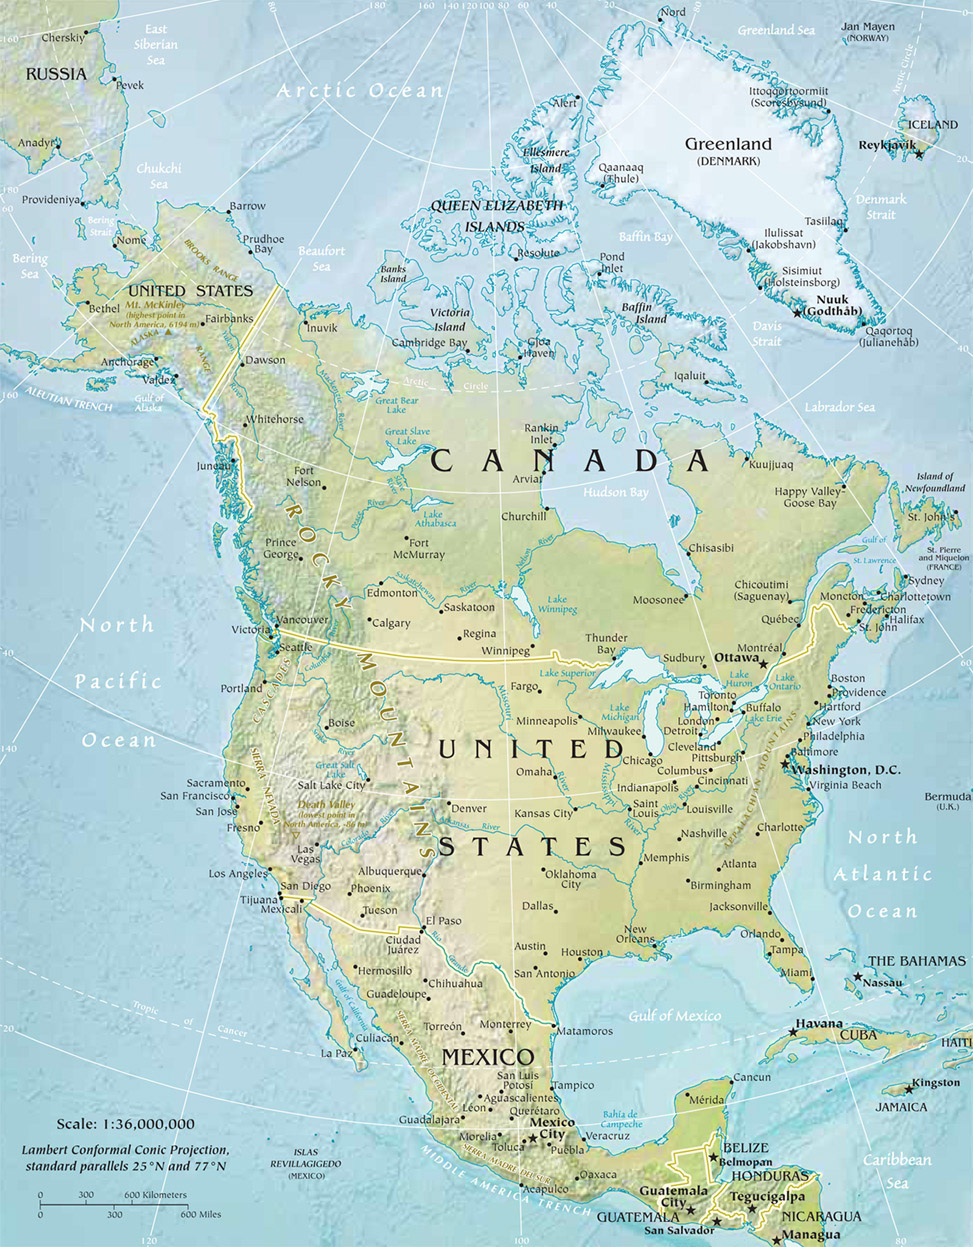 North America large physical and relief map Large physical and relief map of